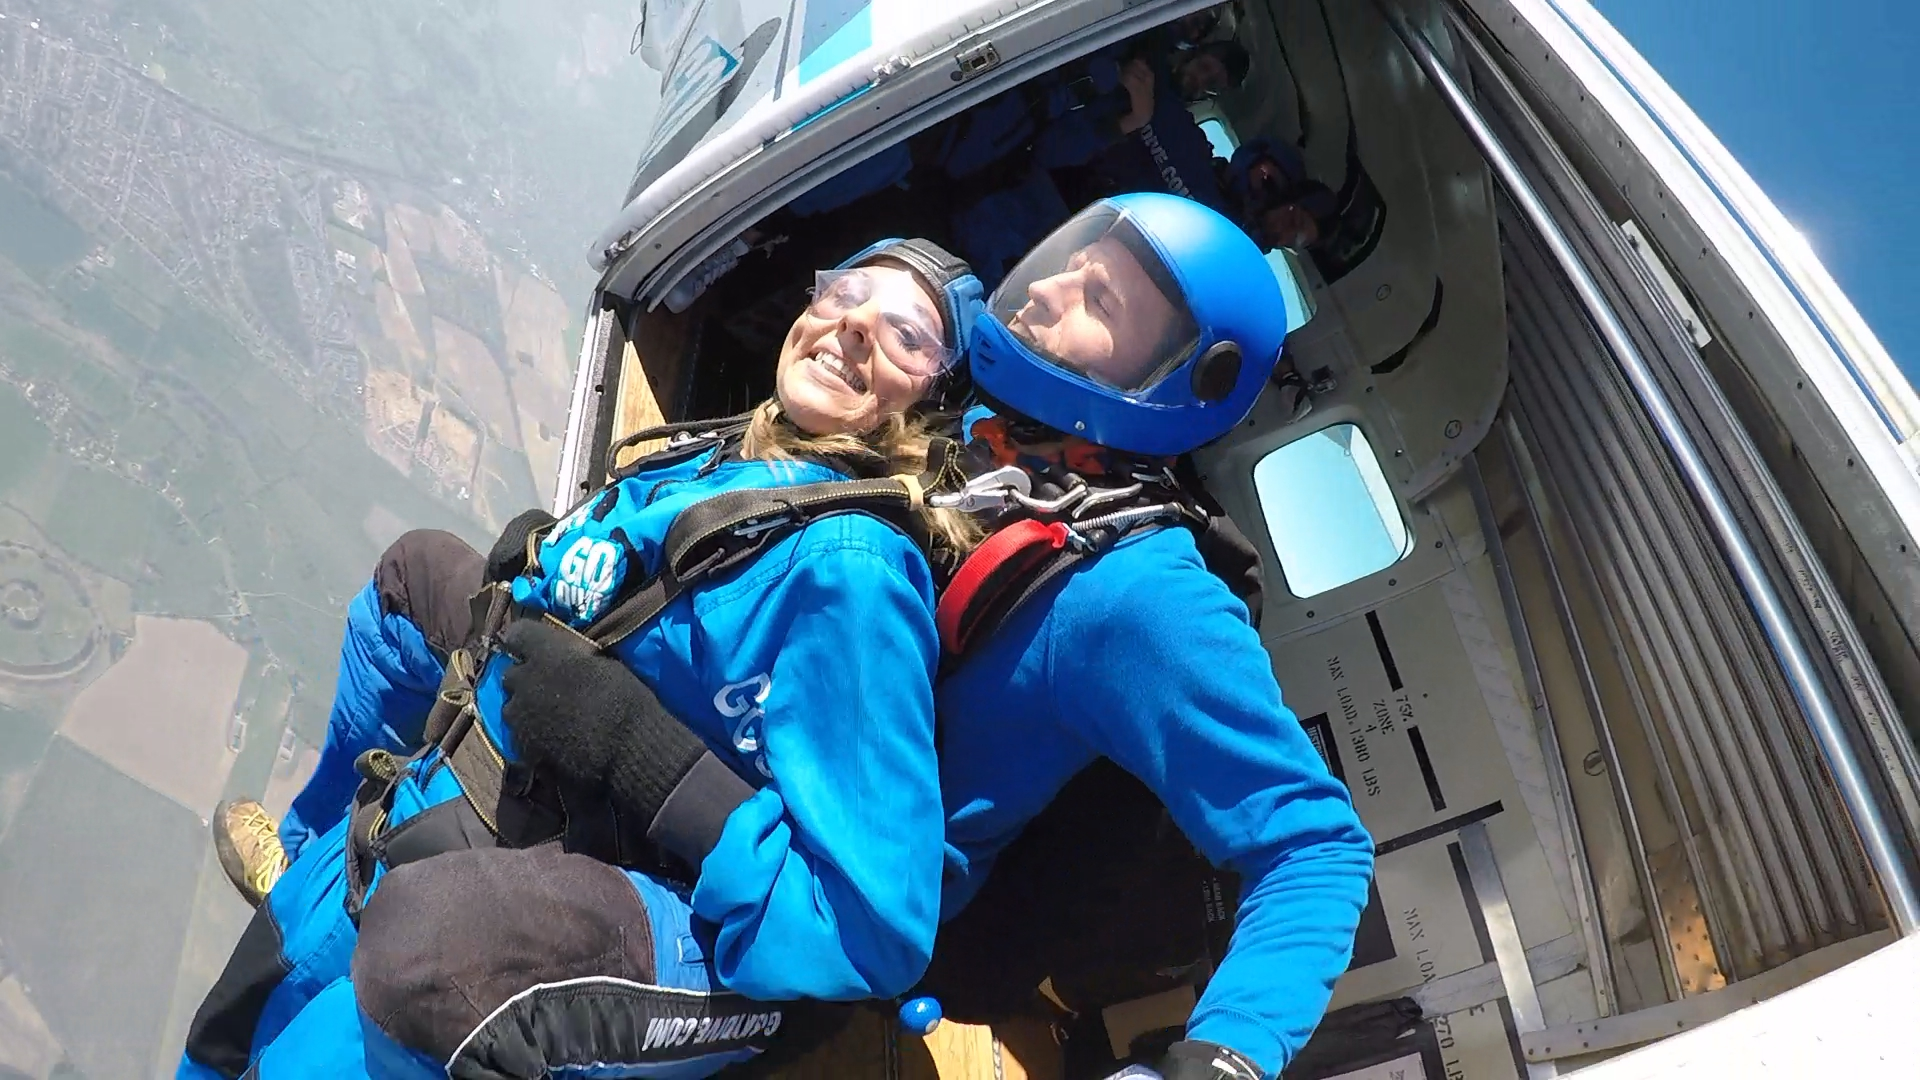 Facing your fear of skydiving | Why facing your fear is a